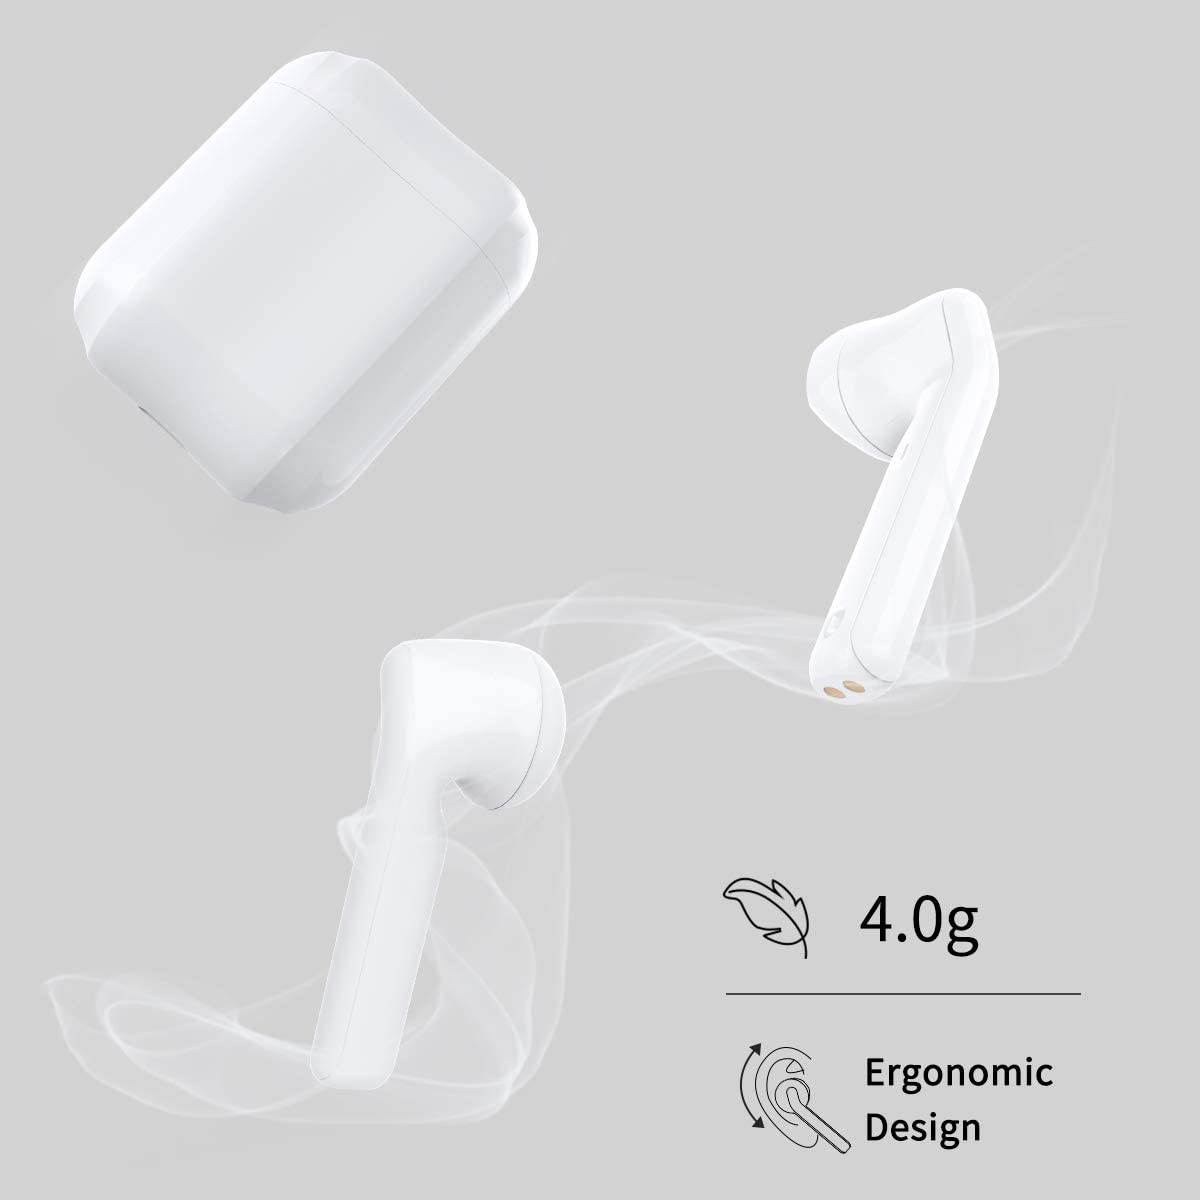 Bluetooth Earbuds Wireless Earbuds Bluetooth Headphones Earphones with 30H Playtime HiFi 3D Stereo Sound,IPX5 Waterproof Built-in Mic Earphones CVC8.0 Apt-X with Charging Case for Sports